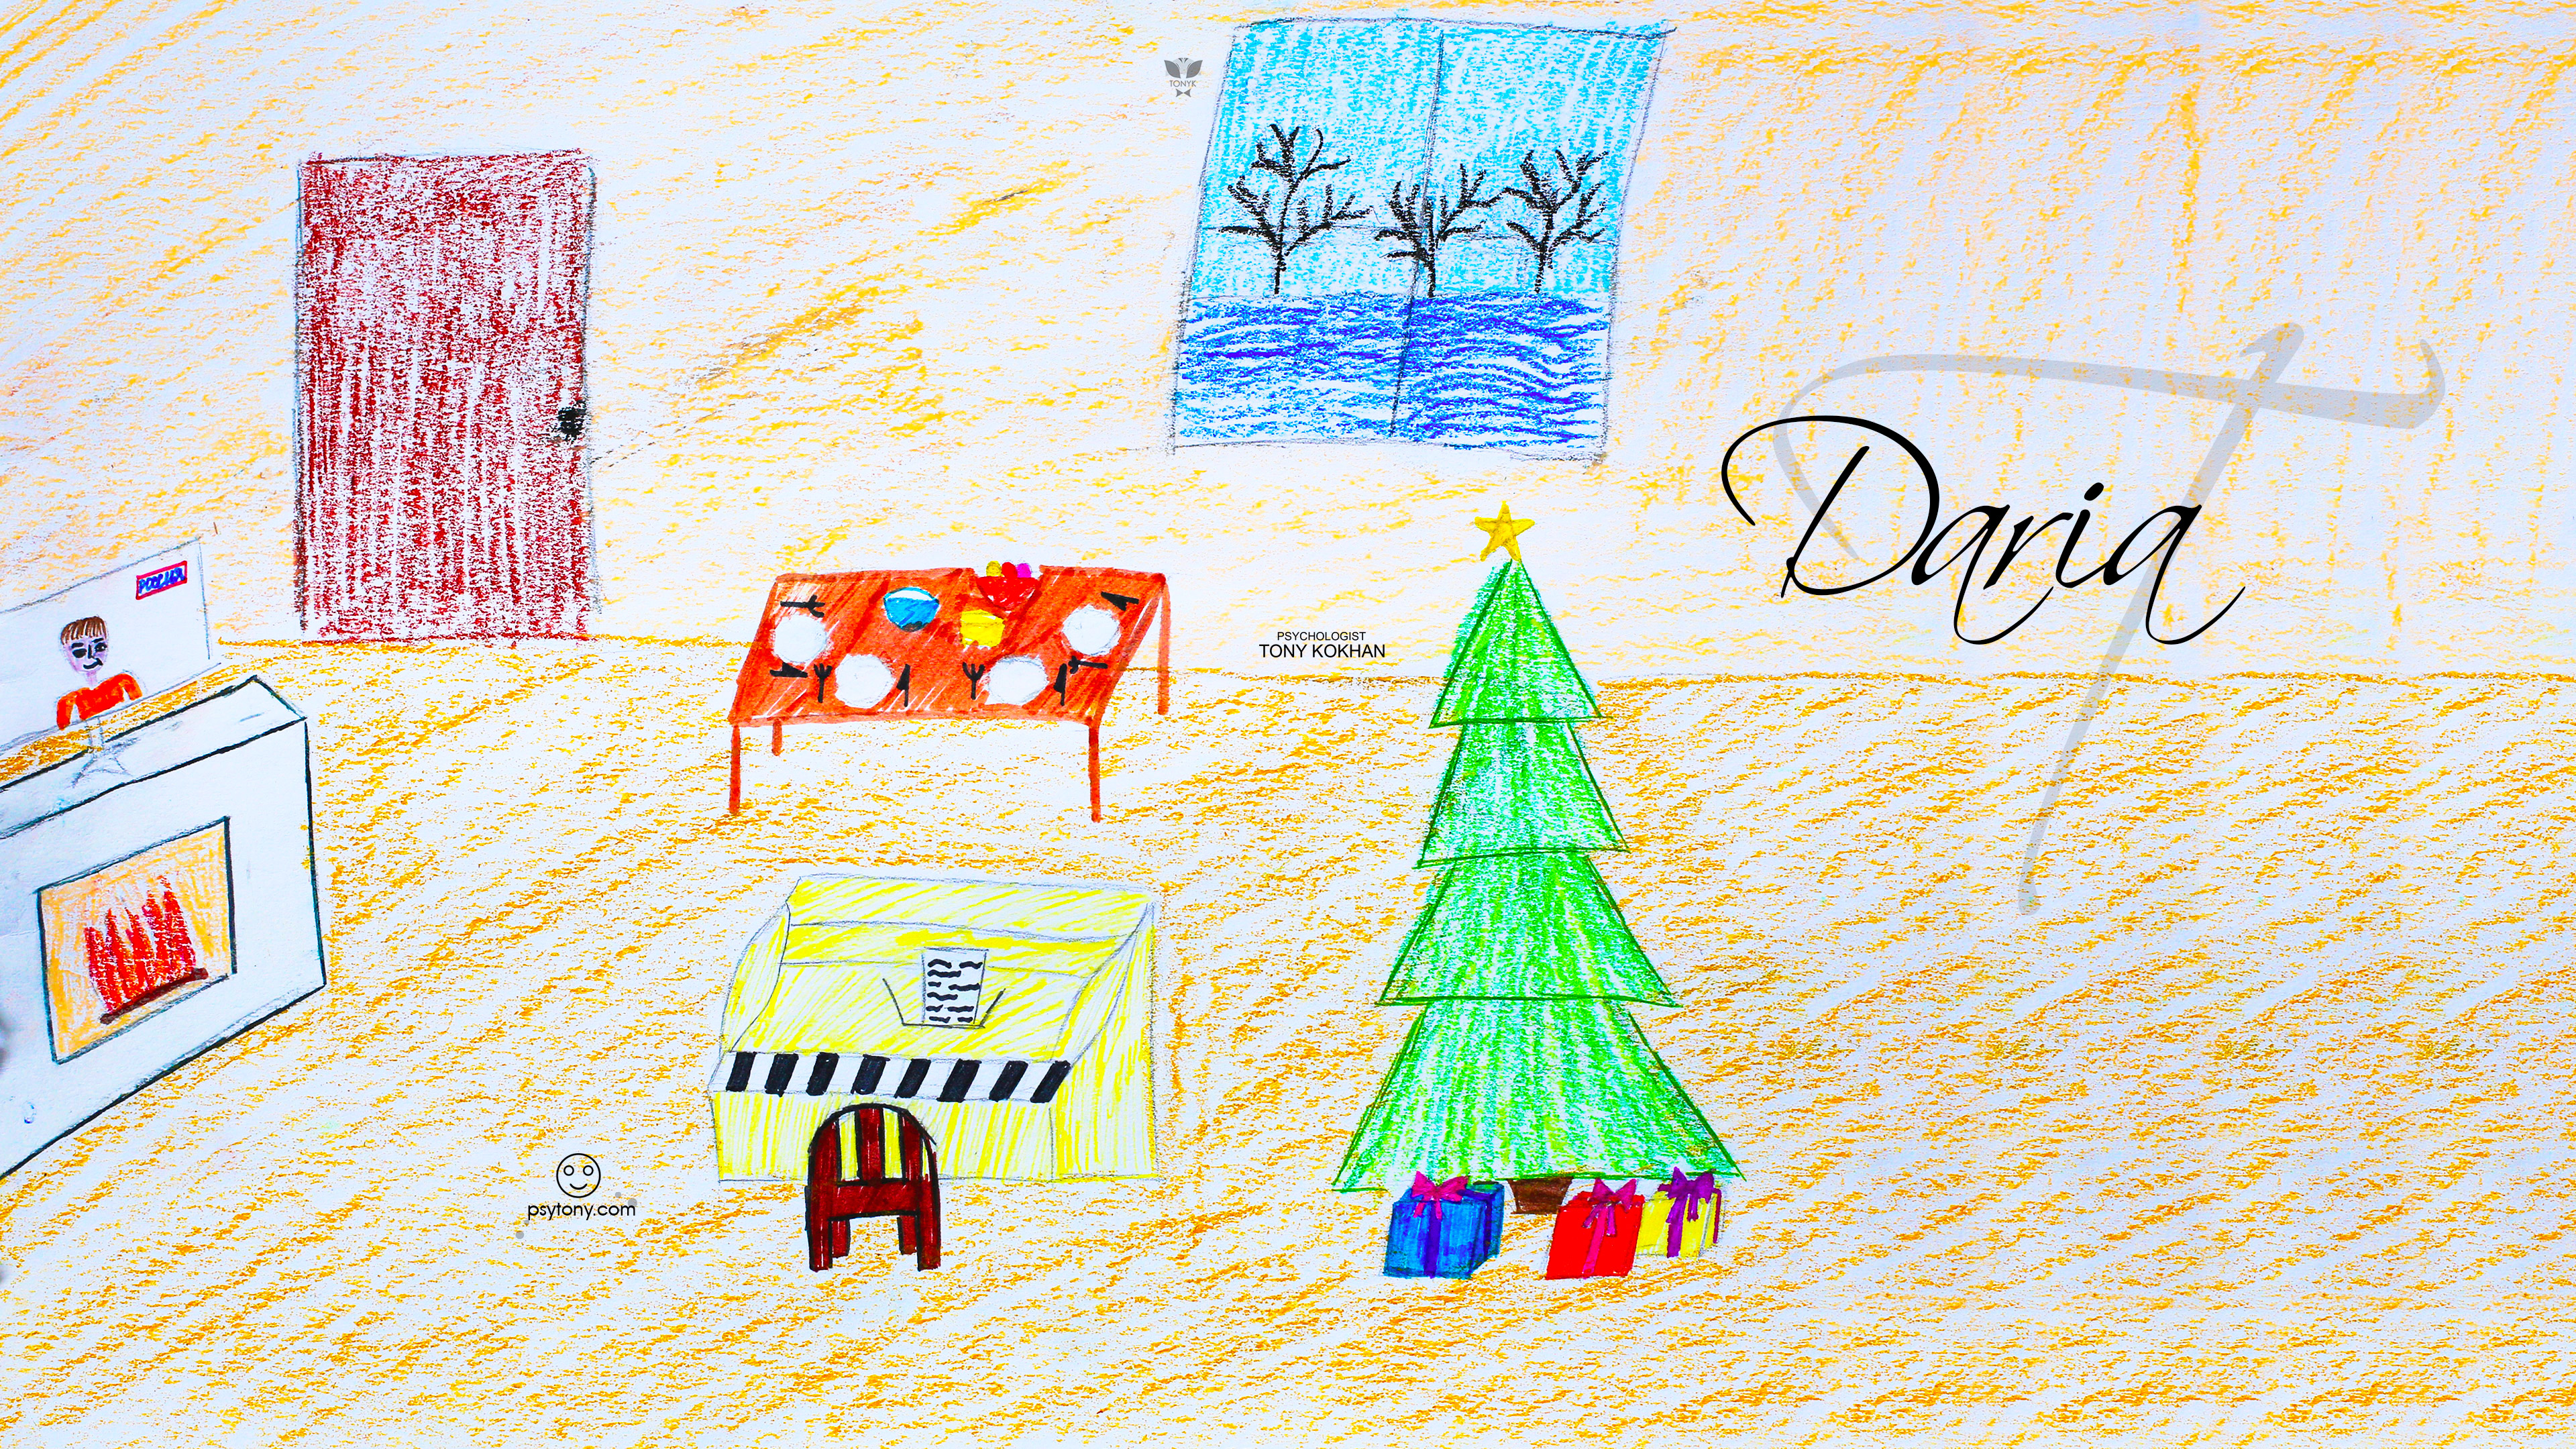 Daria-Soul-Girl-Home-Christmas-Tree-TV-Piano-Winter-Window-Art-Drawing-With-Pastel-Art-Style-2019-Multicolors-4K-Wallpapers-by-Psychologist-Tony-Kokhan-www.psytony.com-image